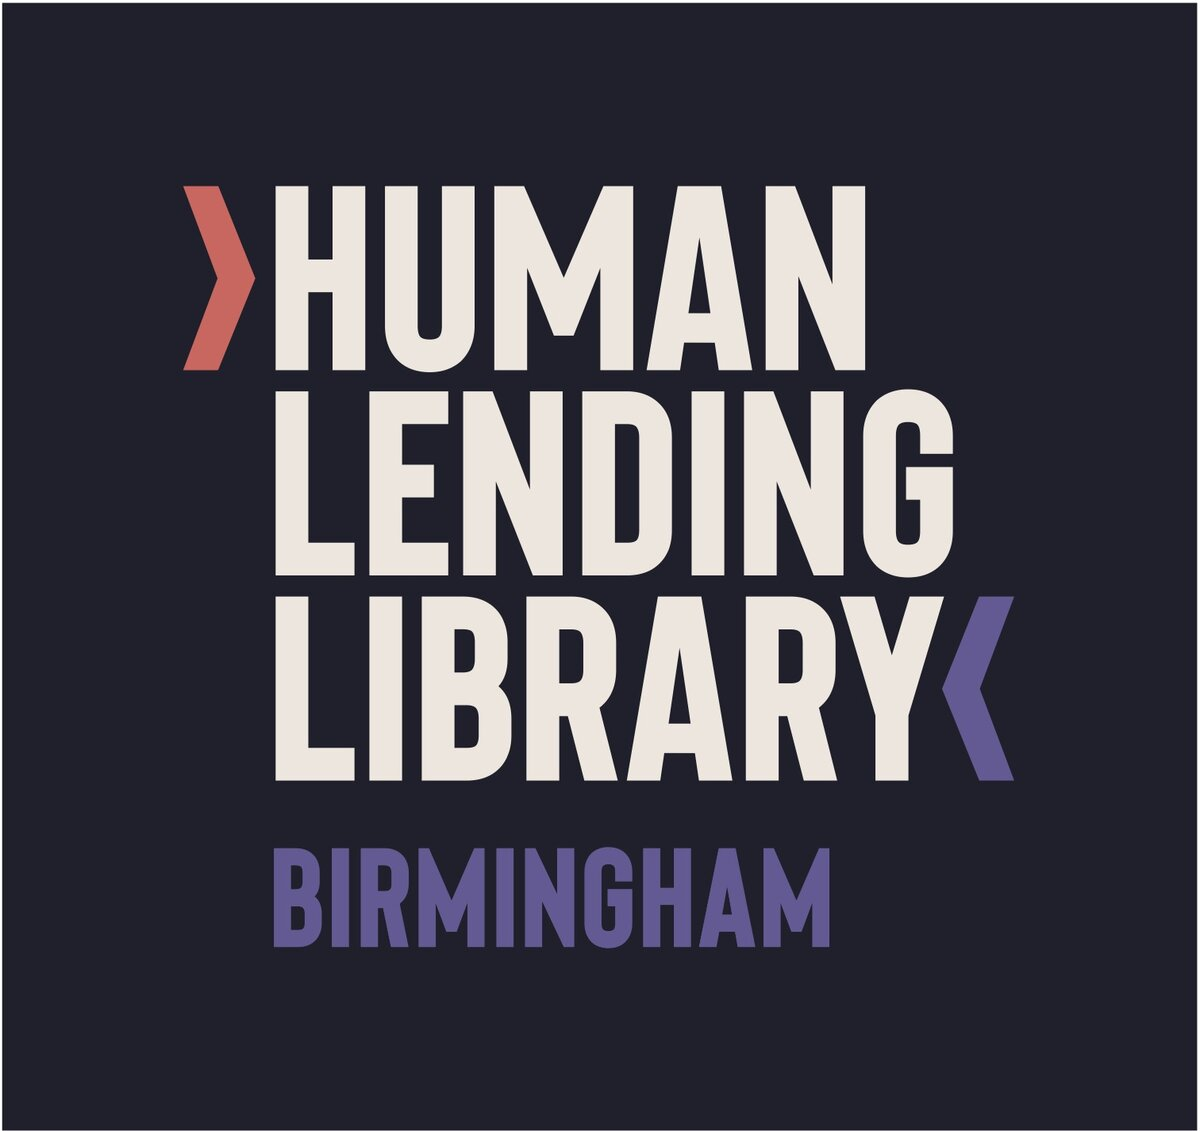 Human Lending Library Launches in Birmingham